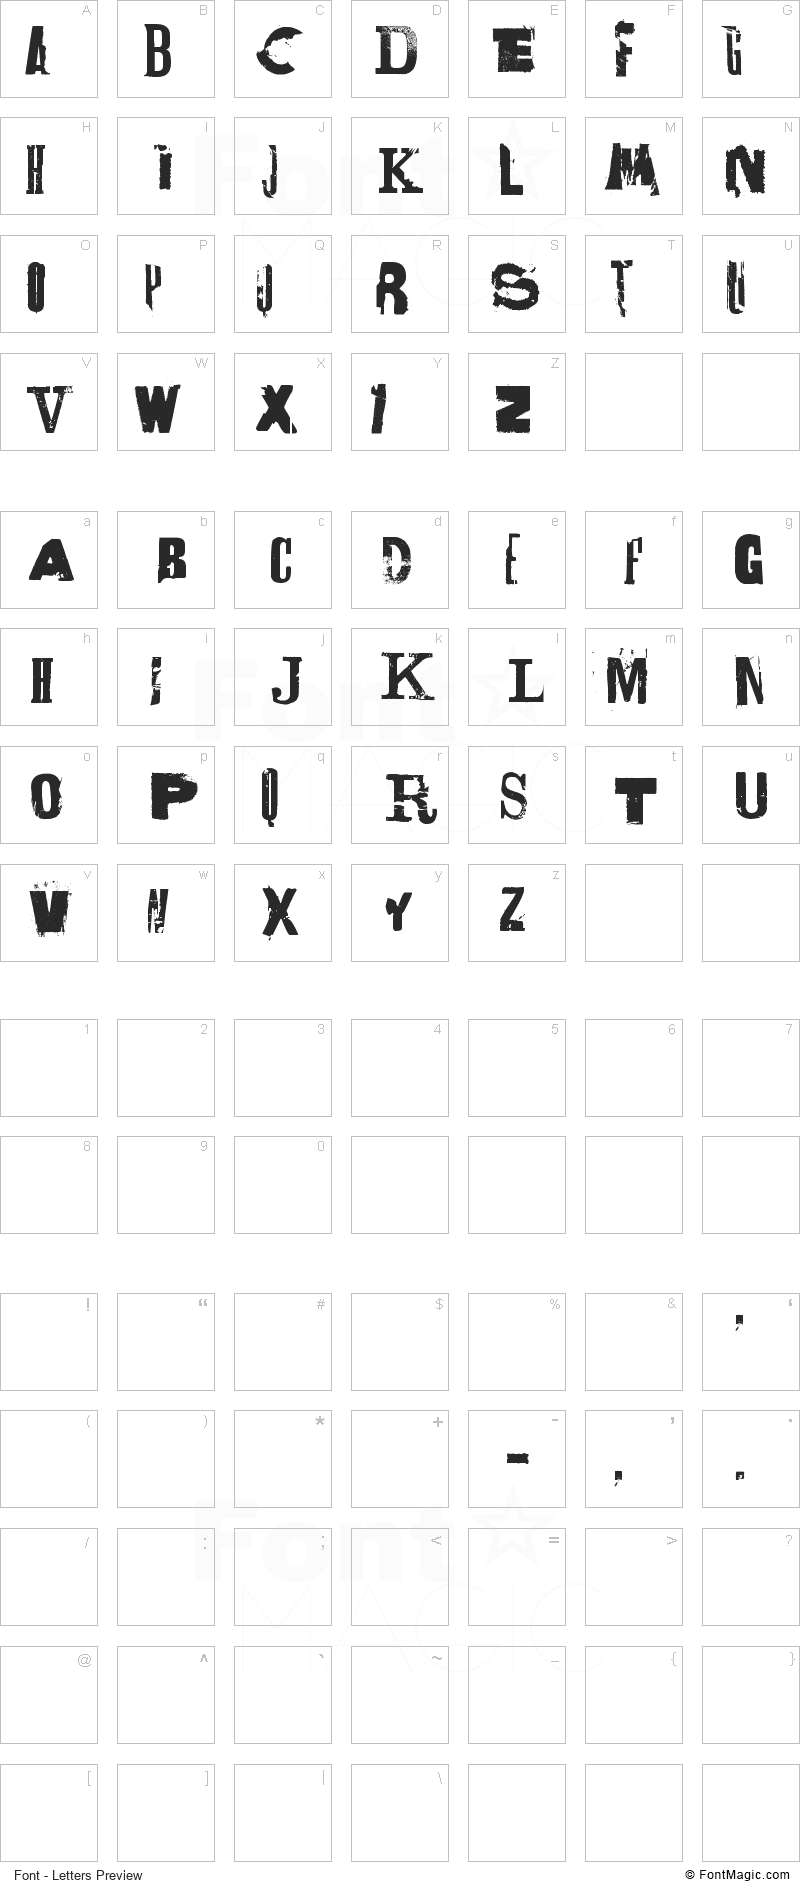 Lettrisme Font - All Latters Preview Chart